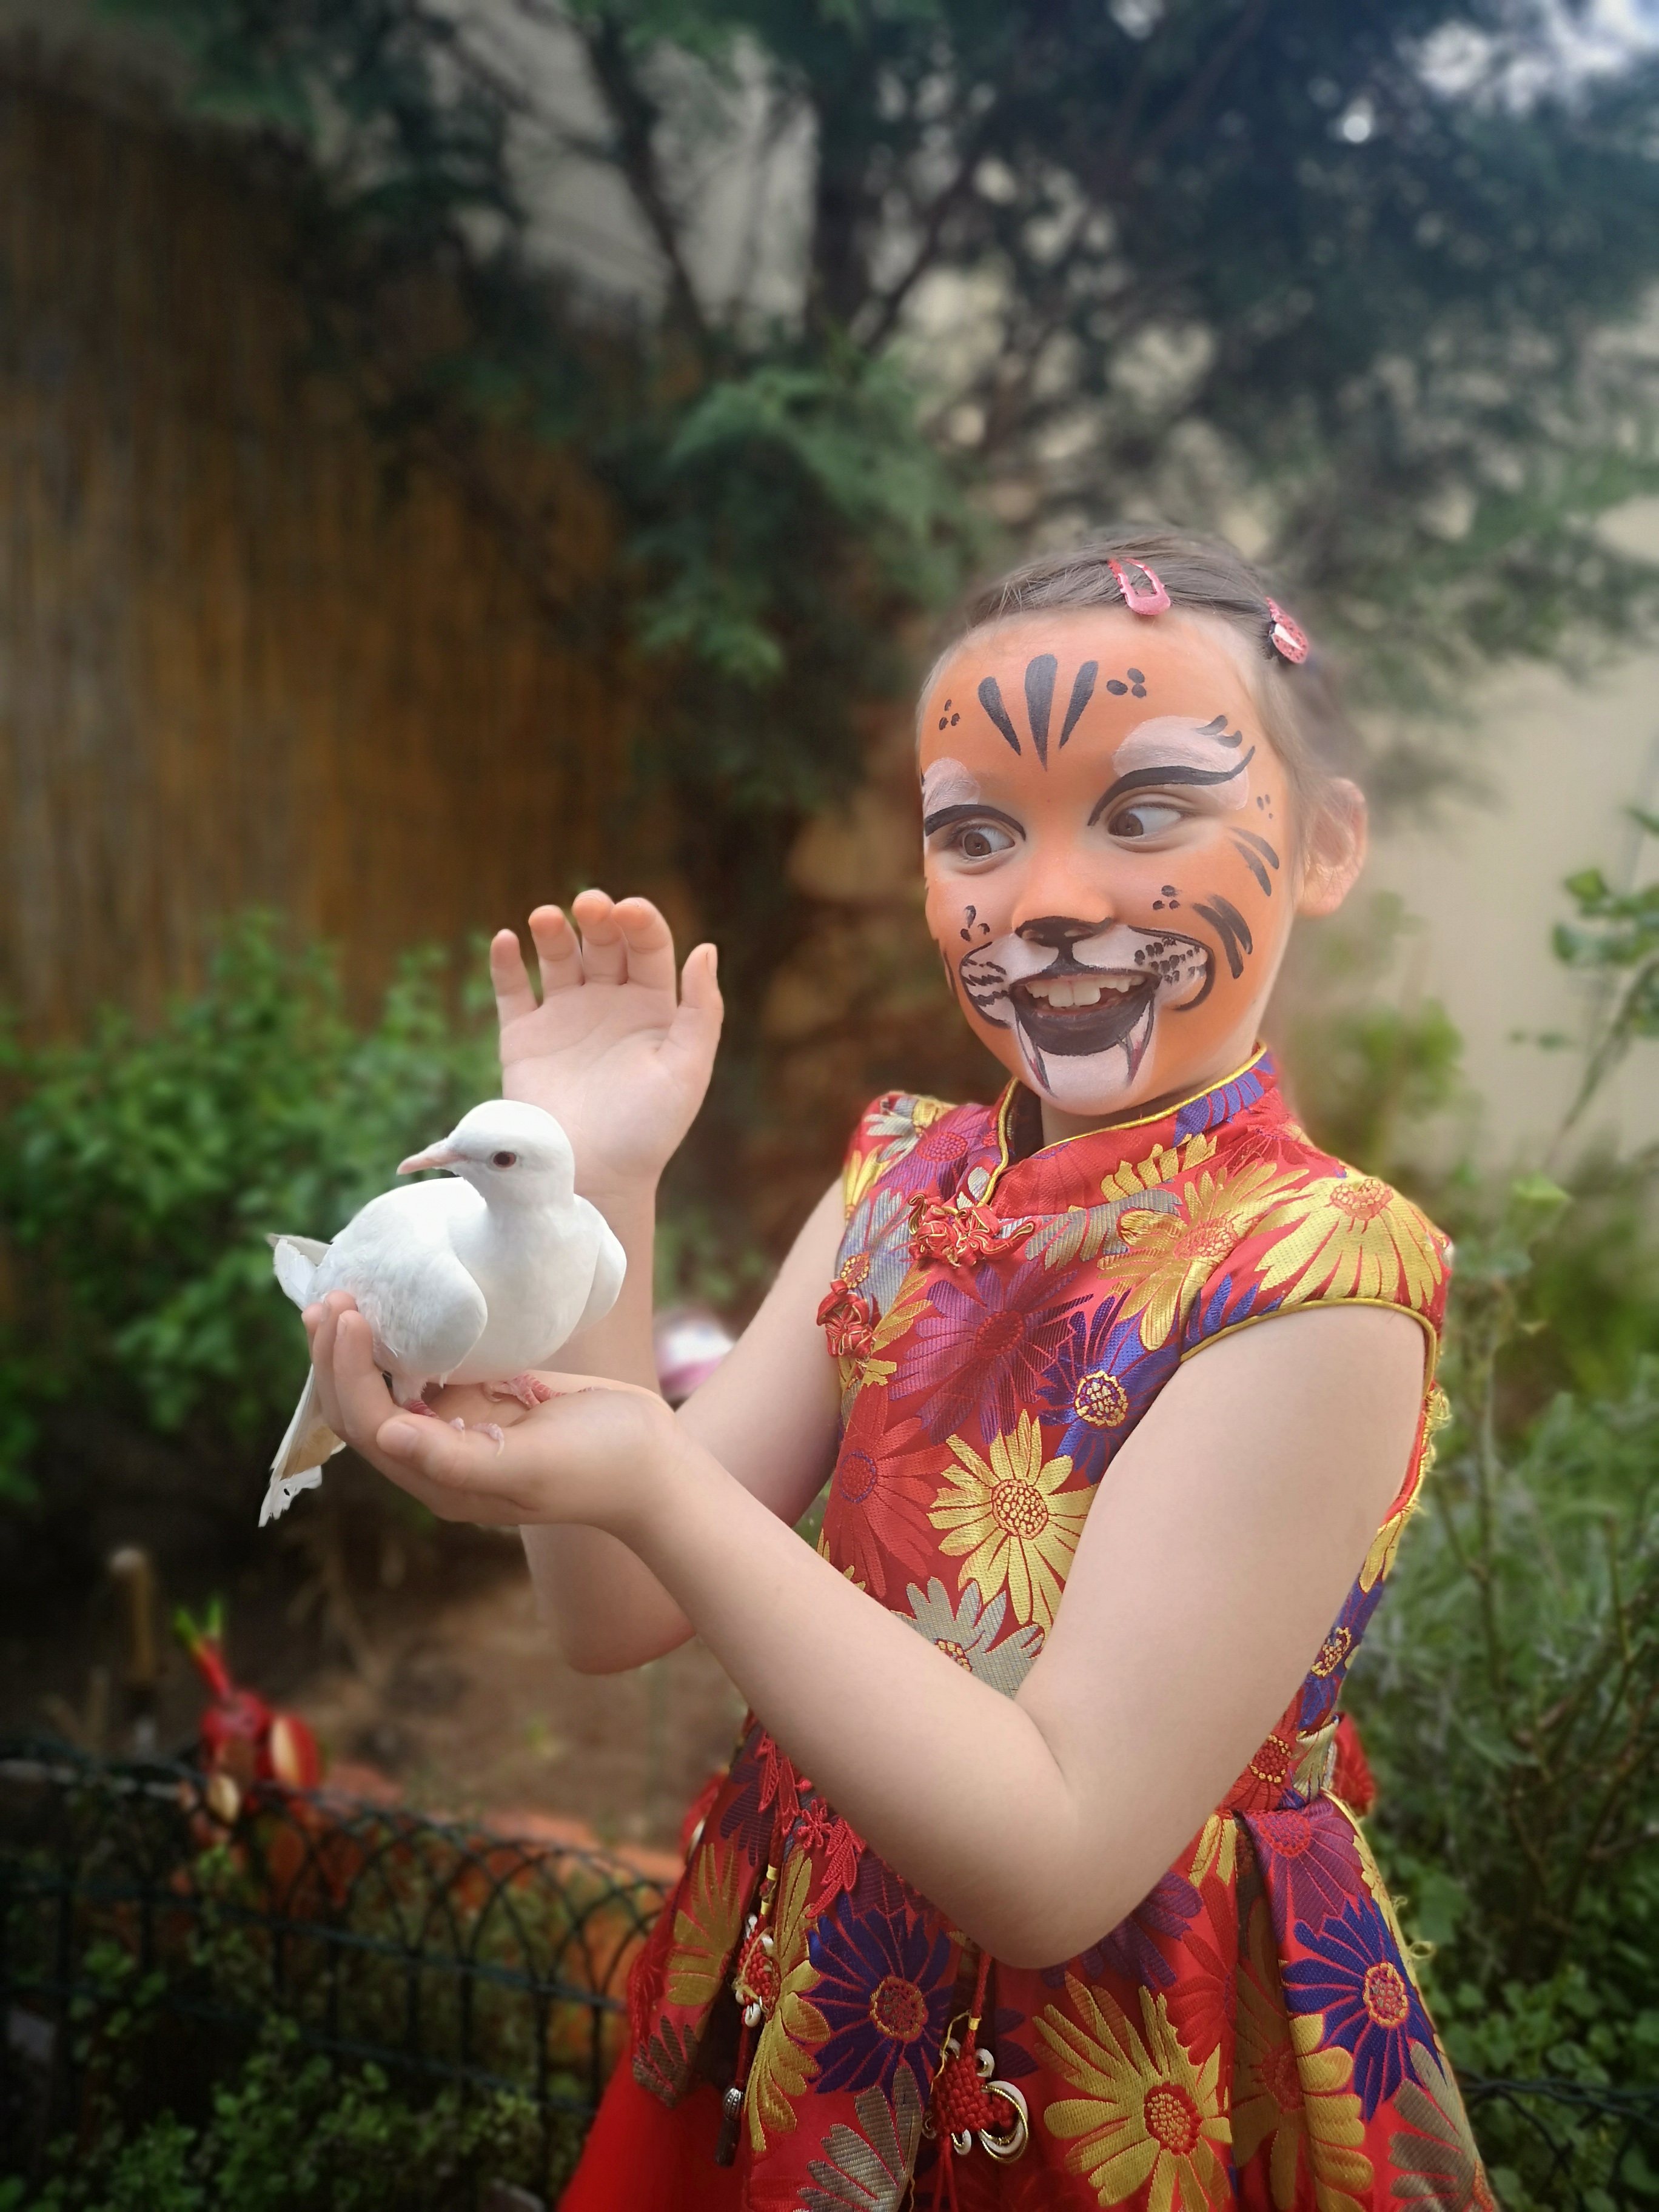 maquillage fille tigre colombe dans les mains